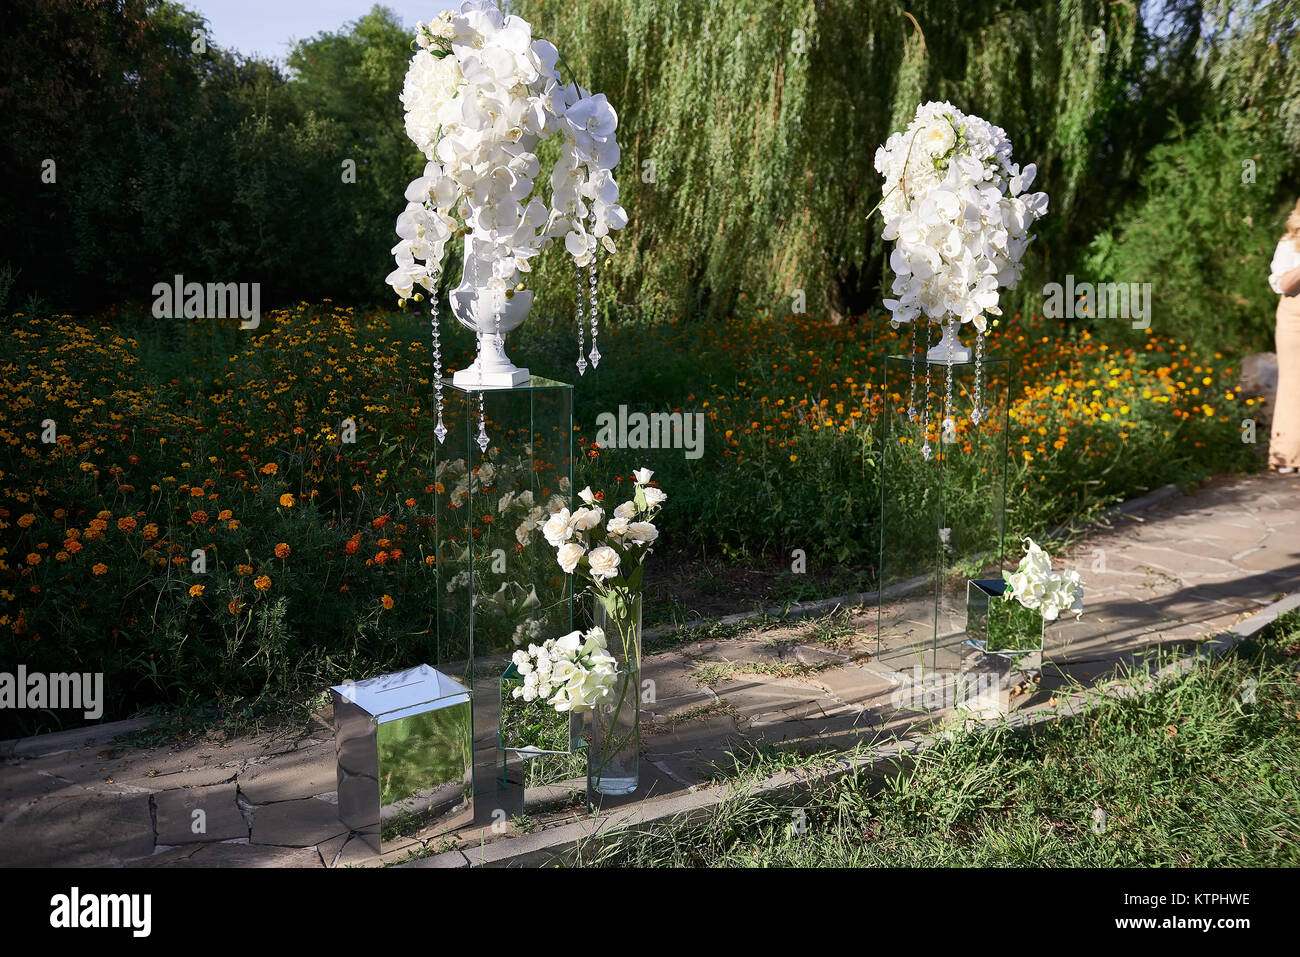 Beautiful Outdoor Restaurant Decorations Of White Flowers And Beads